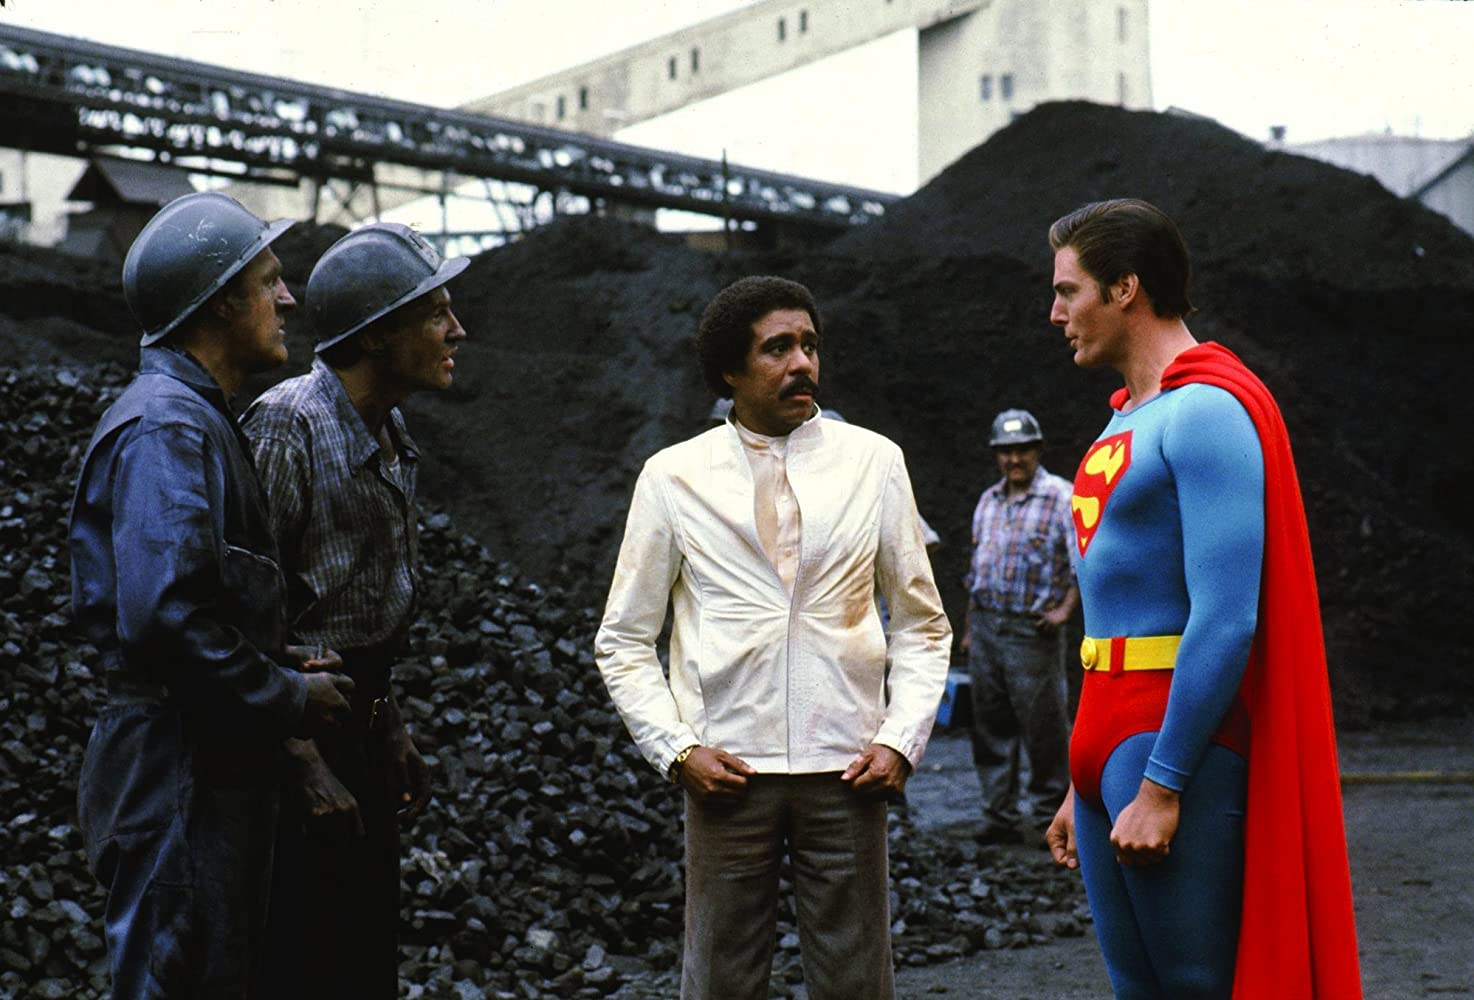 Richard Pryor, Christopher Reeve, Larry Lamb, and Christopher Malcolm in Superman III (1983)